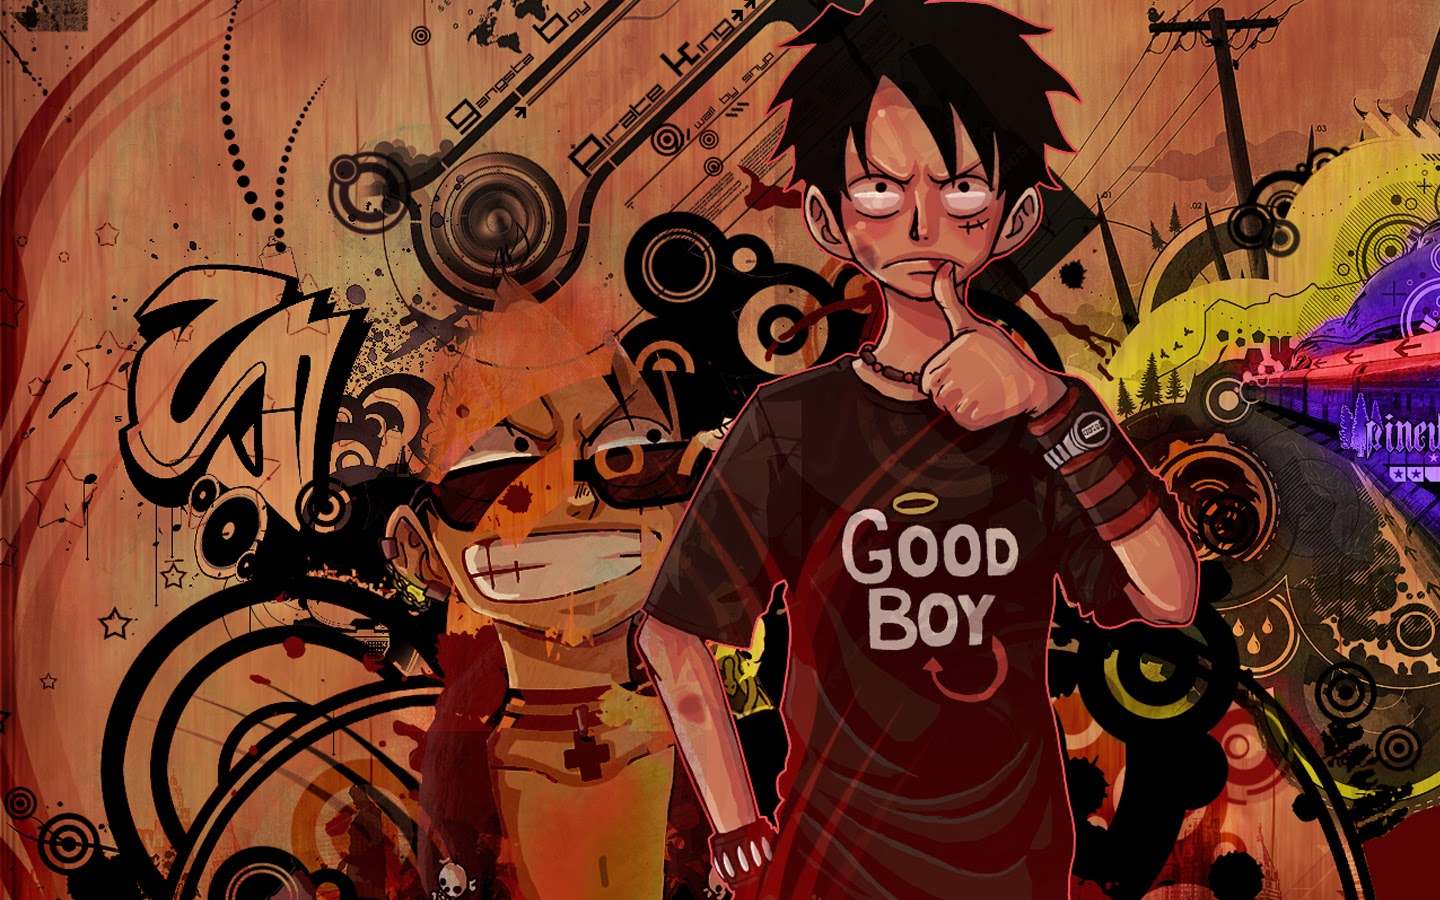 Hd wallpaper one piece - Monkey D Luffy One Piece Anime Hd Wallpaper Image Picture 1440x900